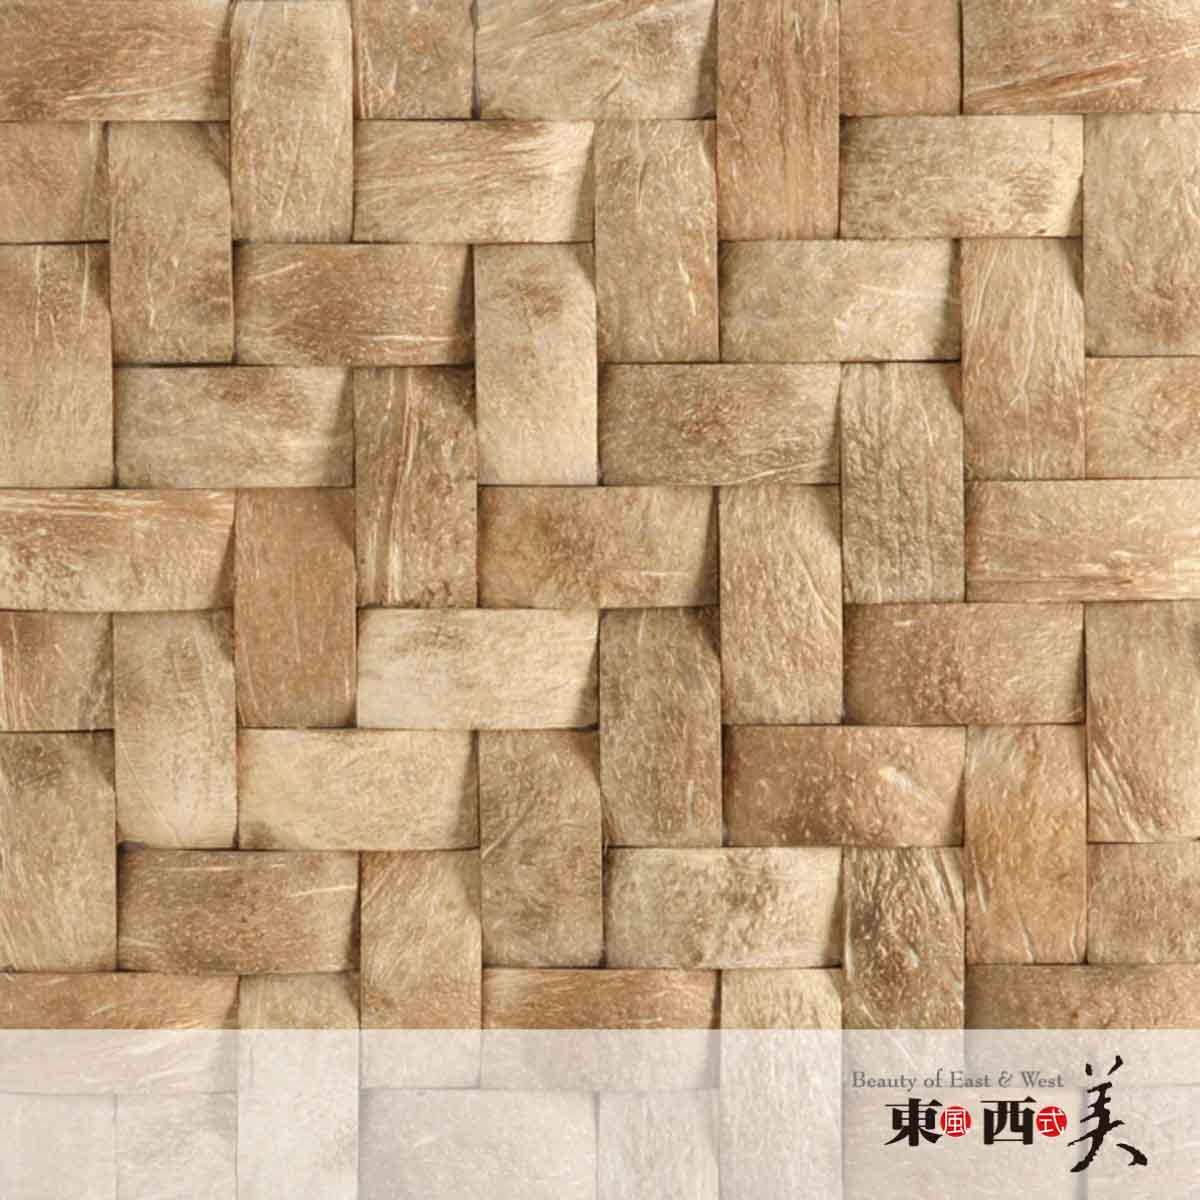 Coconut Shell Decoration for Interior Walls | Coconut Tiles Suppliers